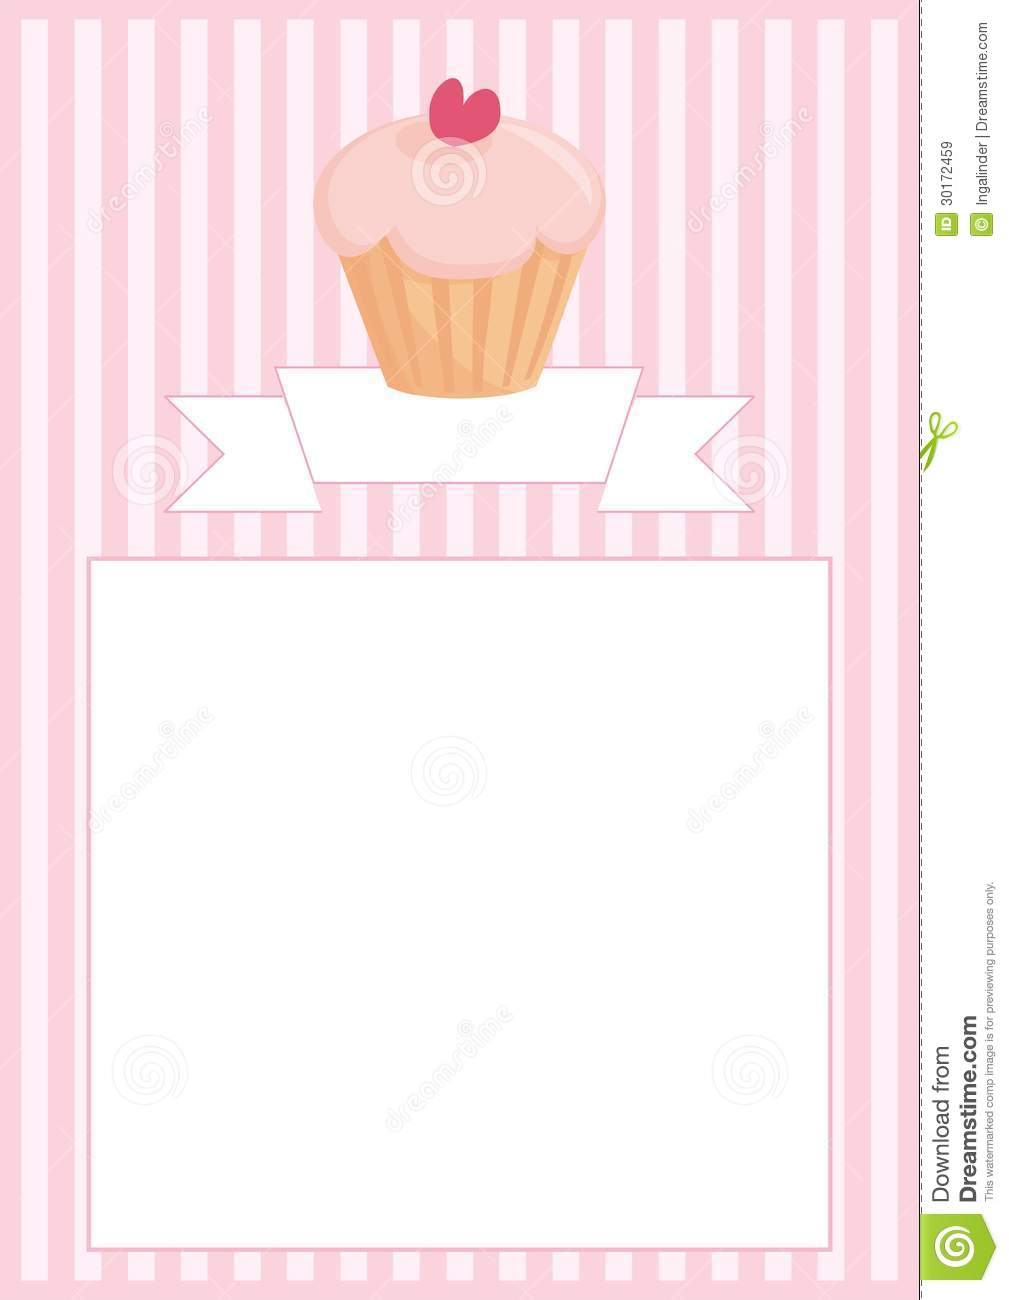 Sweet Vector Retro Cupcake On Pink Vintage Strips Royalty Free Stock Images